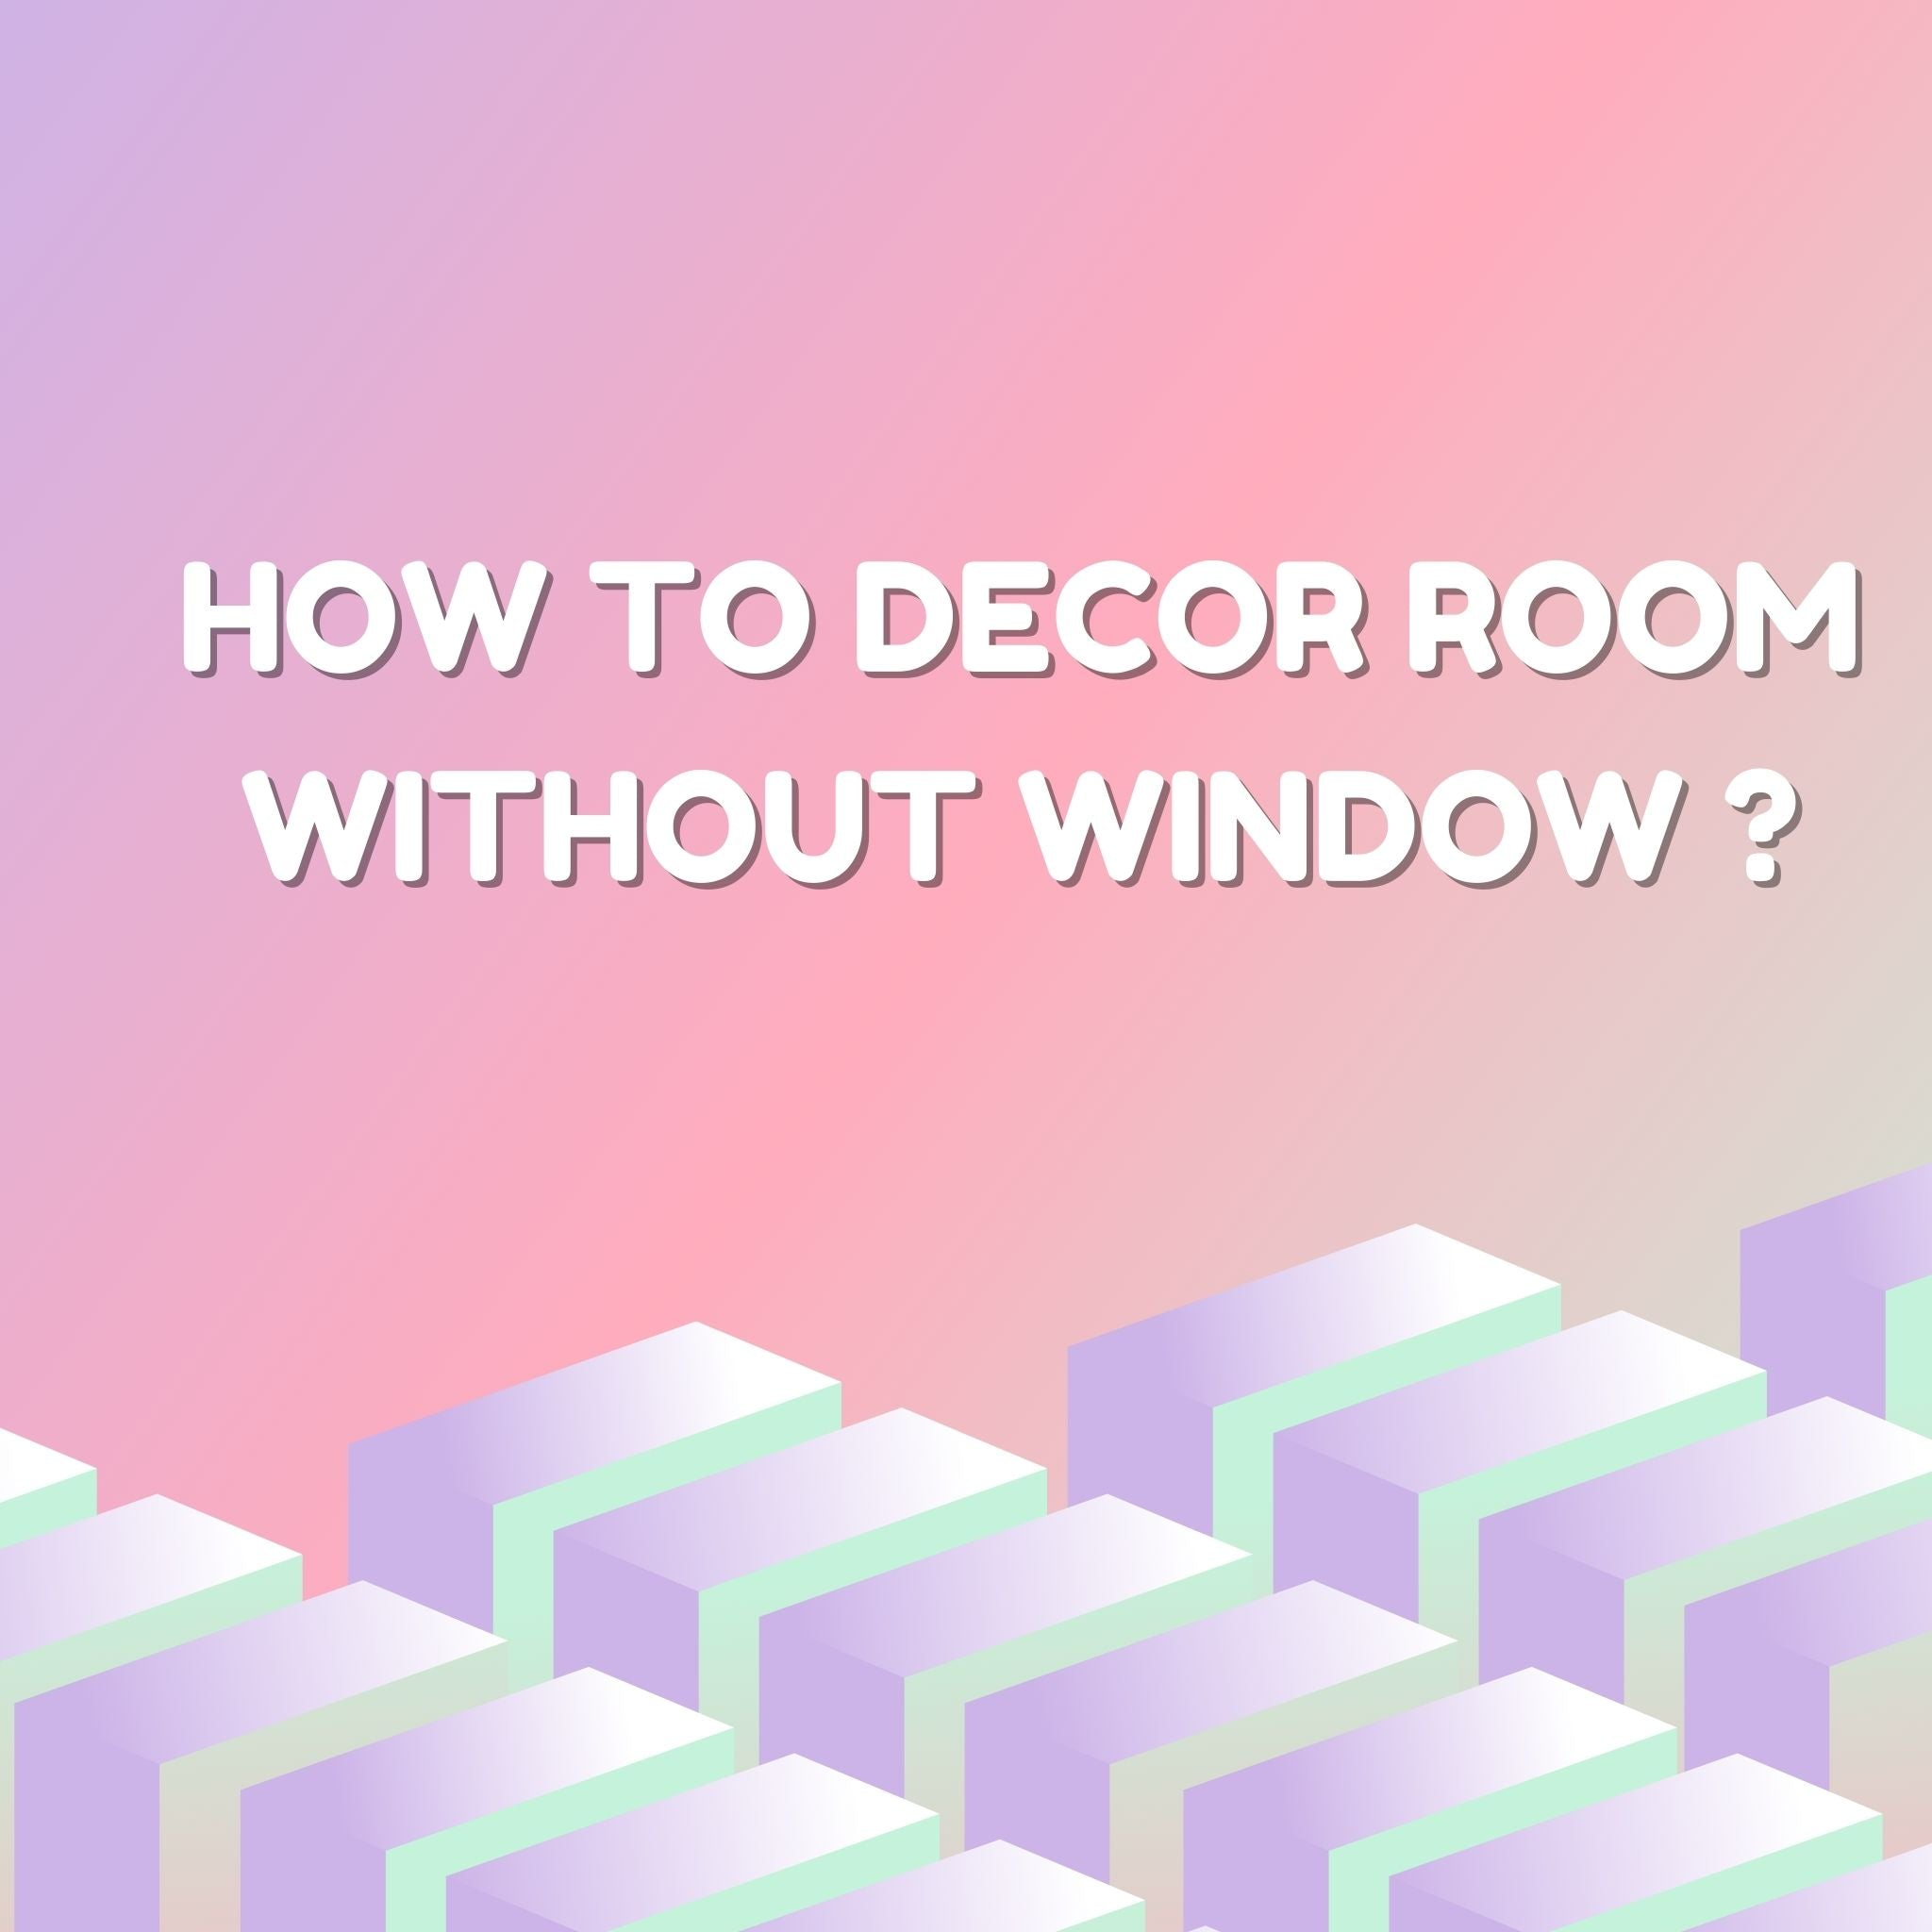 HOW TO DECOR ROOM WITHOUT WINDOW | Antique window frame